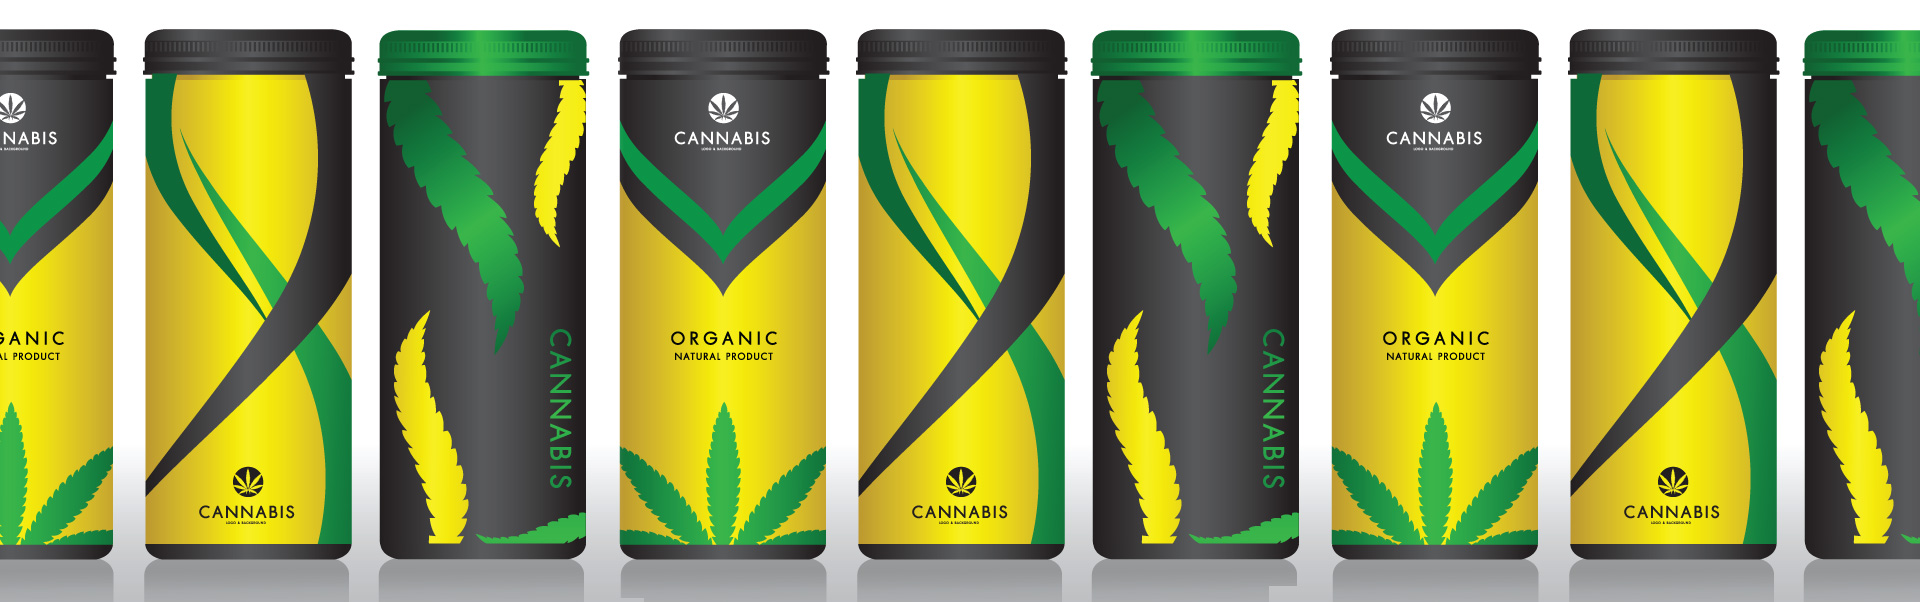 for cannabis packaging